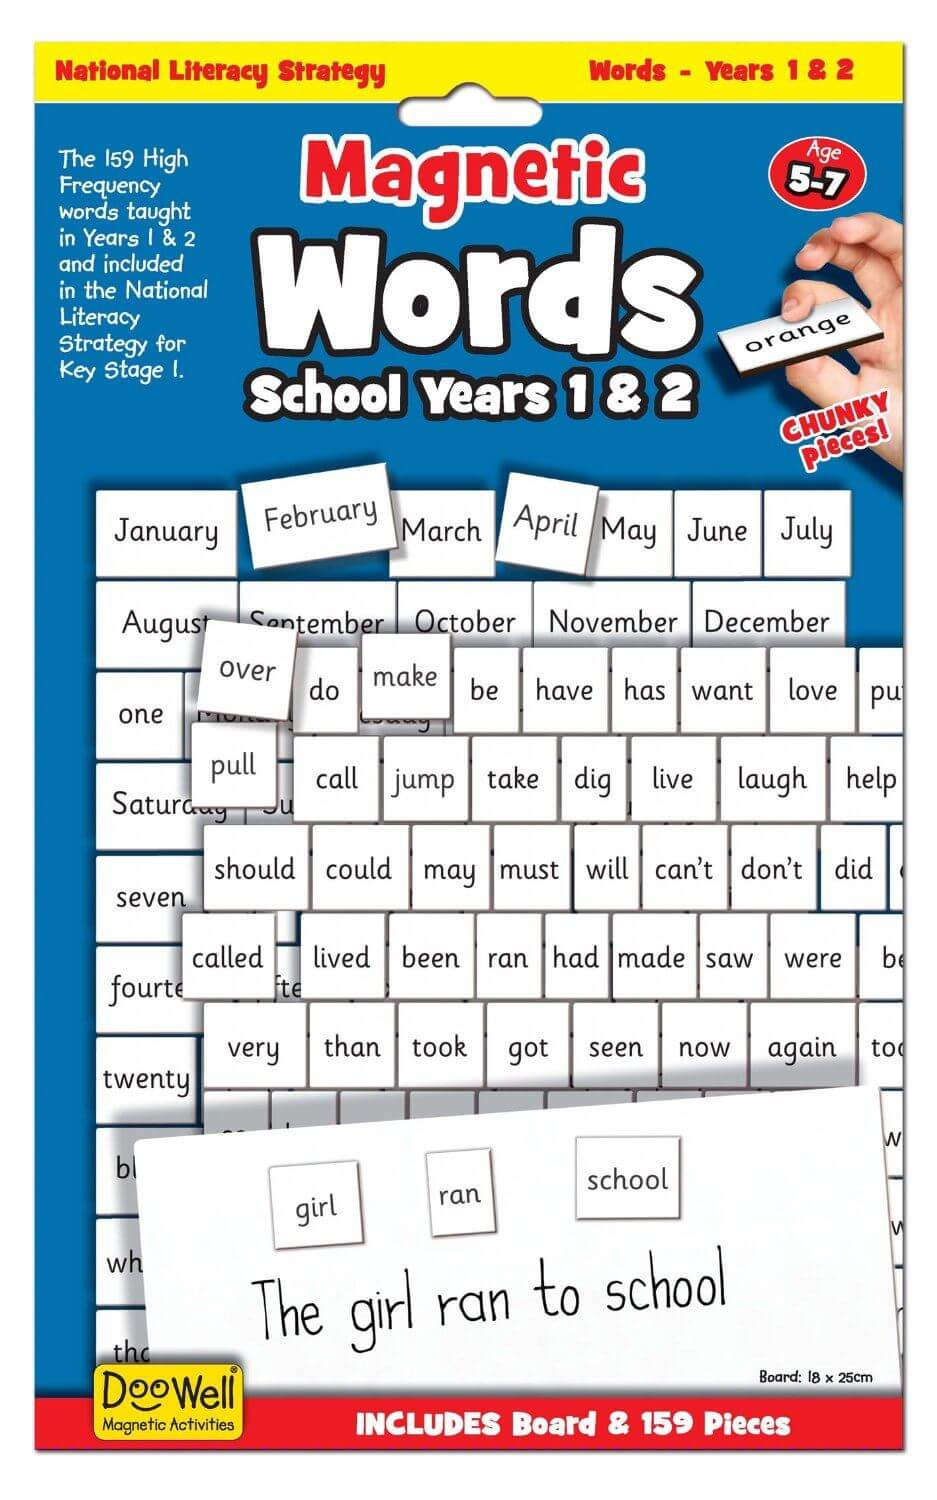 Doowell Magnetic Words School Years 1&2